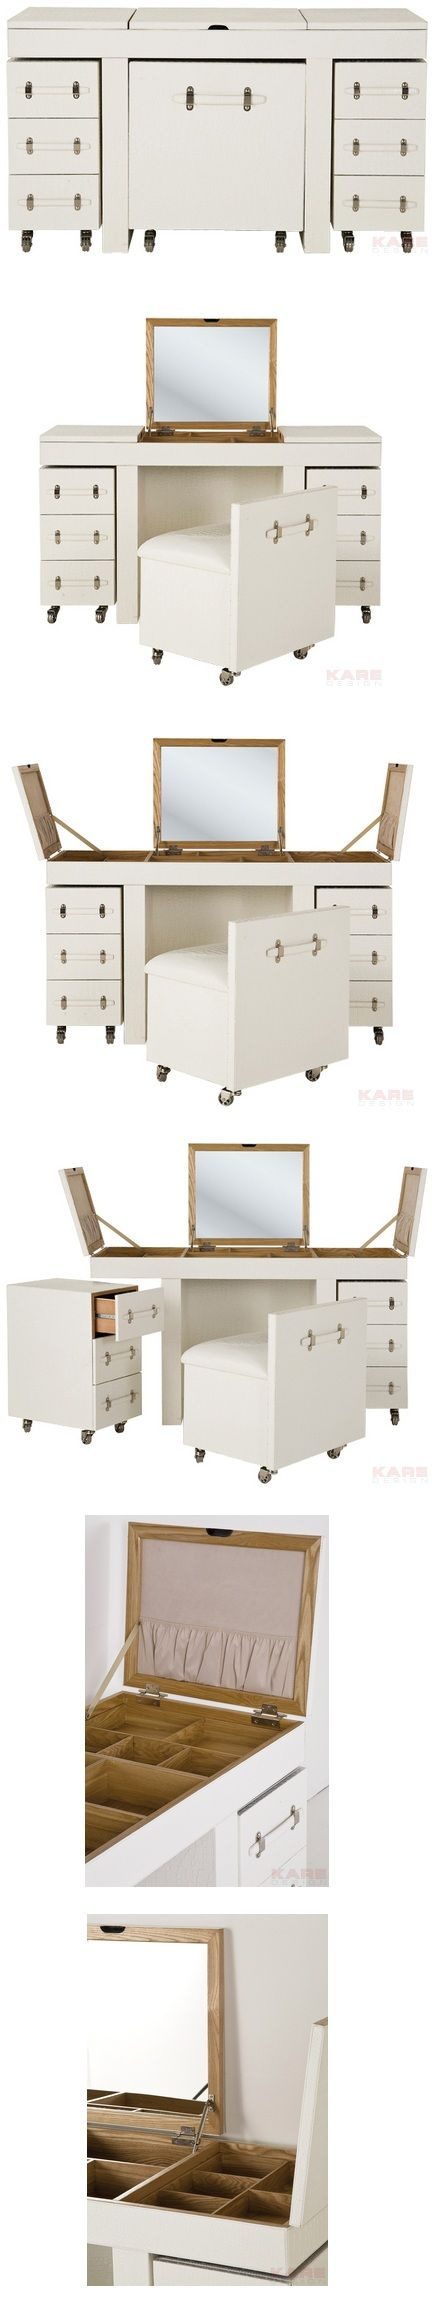 A compact vanity/dresser | The White Diva dressing table